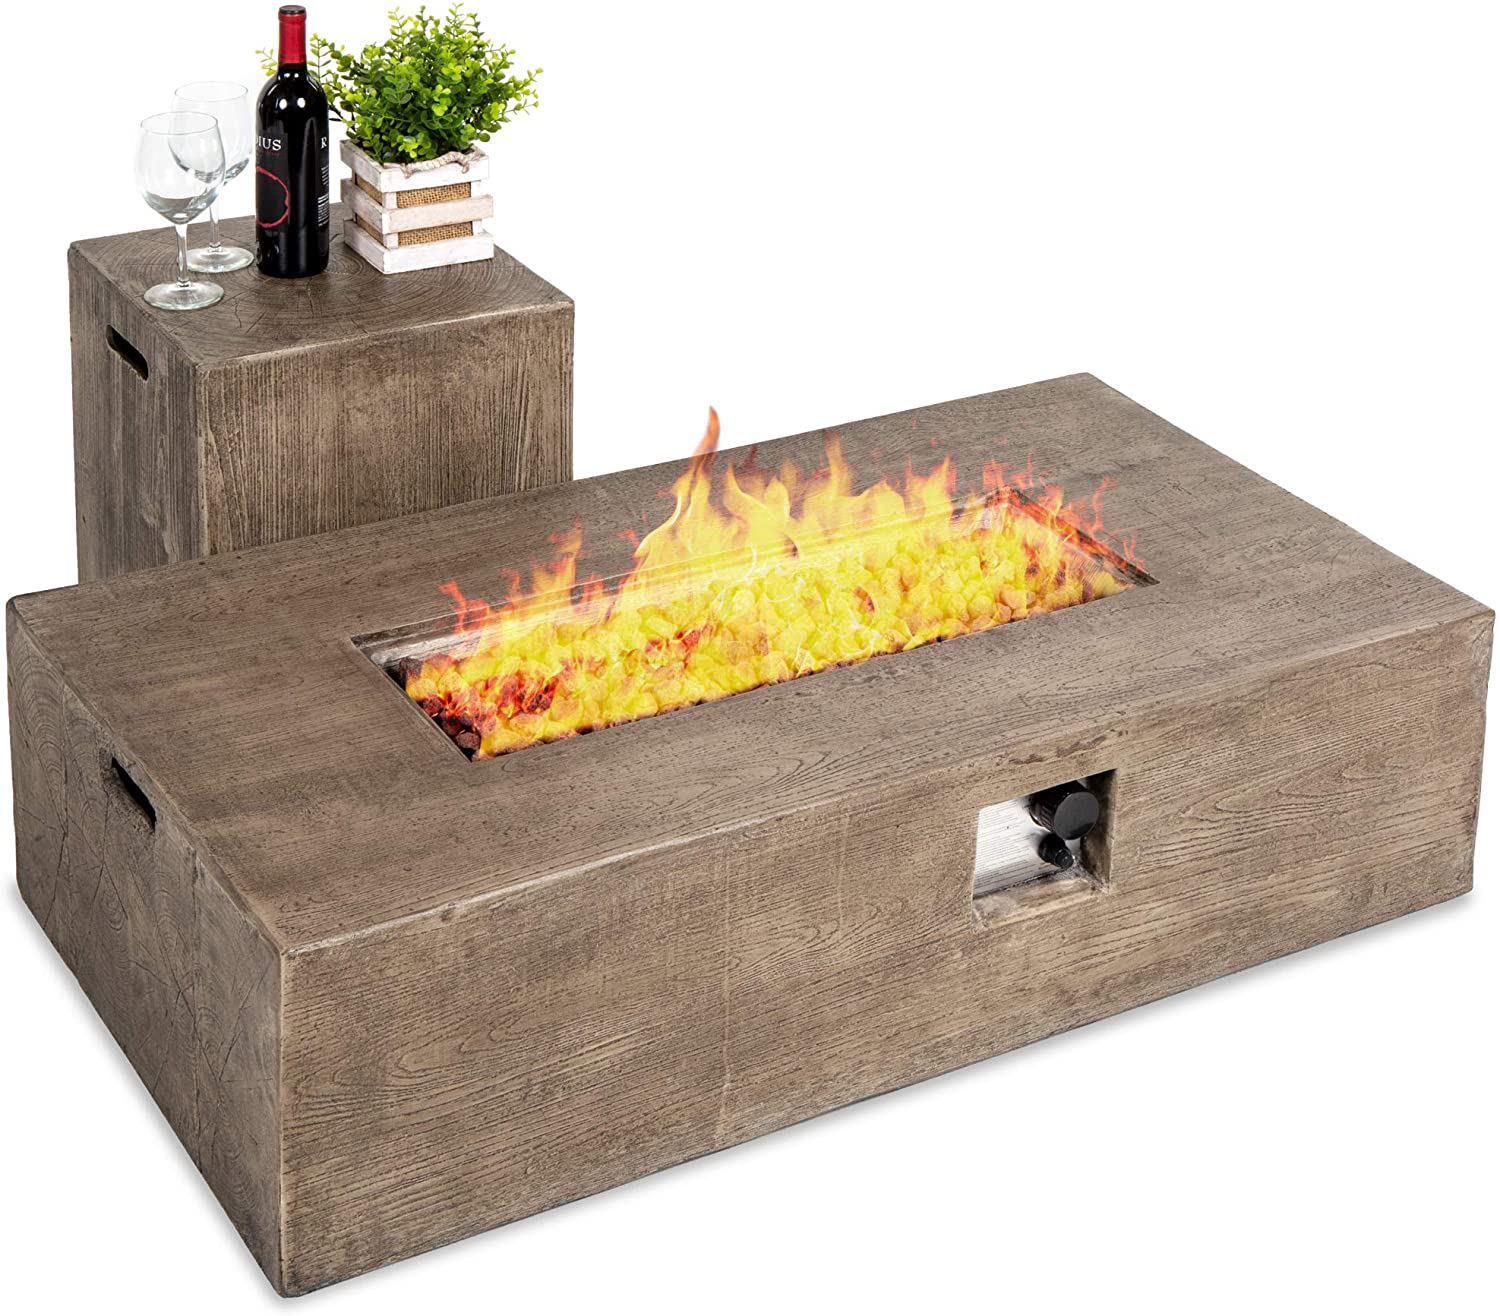 Amazon Com Best Choice Products 48x27 Inch 50 000 Btu Outdoor Patio Rustic Farmhouse Wood Finish Propane Fire Pit Table And Gas Tank Storage Side Table W Weather Resistant Pit Cover Glass Rocks Brown Garden